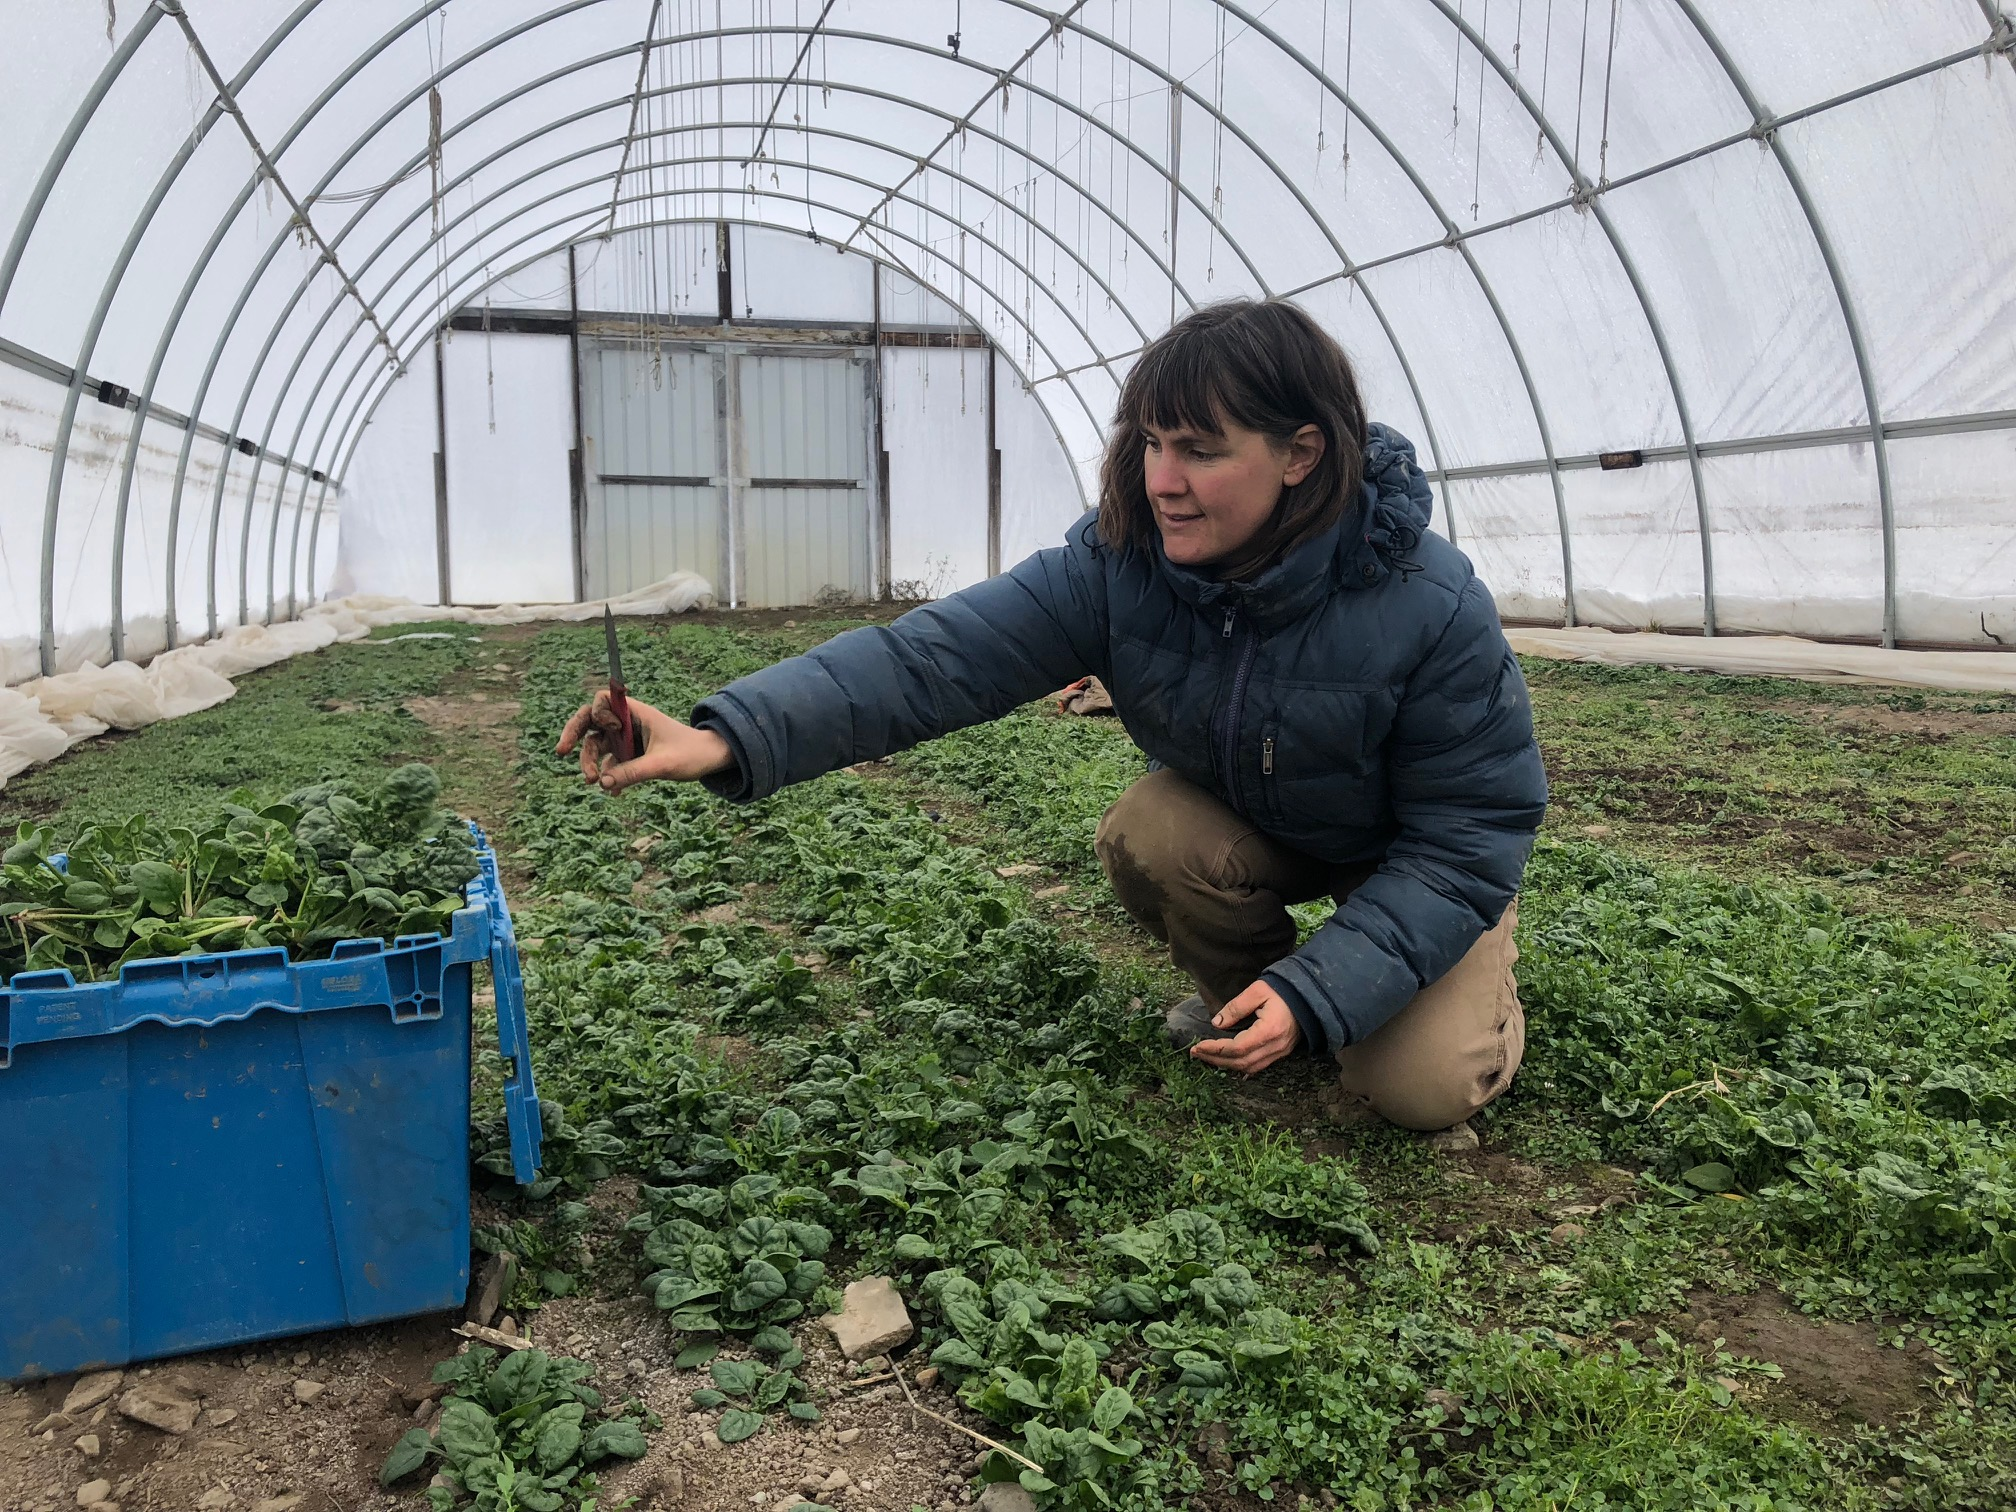 Lucy Garrison, one of the owners of Stick and Stone Farm, harvests spinach in one of the high tunnels on her farm. Lucy said she tries to tailor the food that she grows to what consumers communicate that they want to eat.